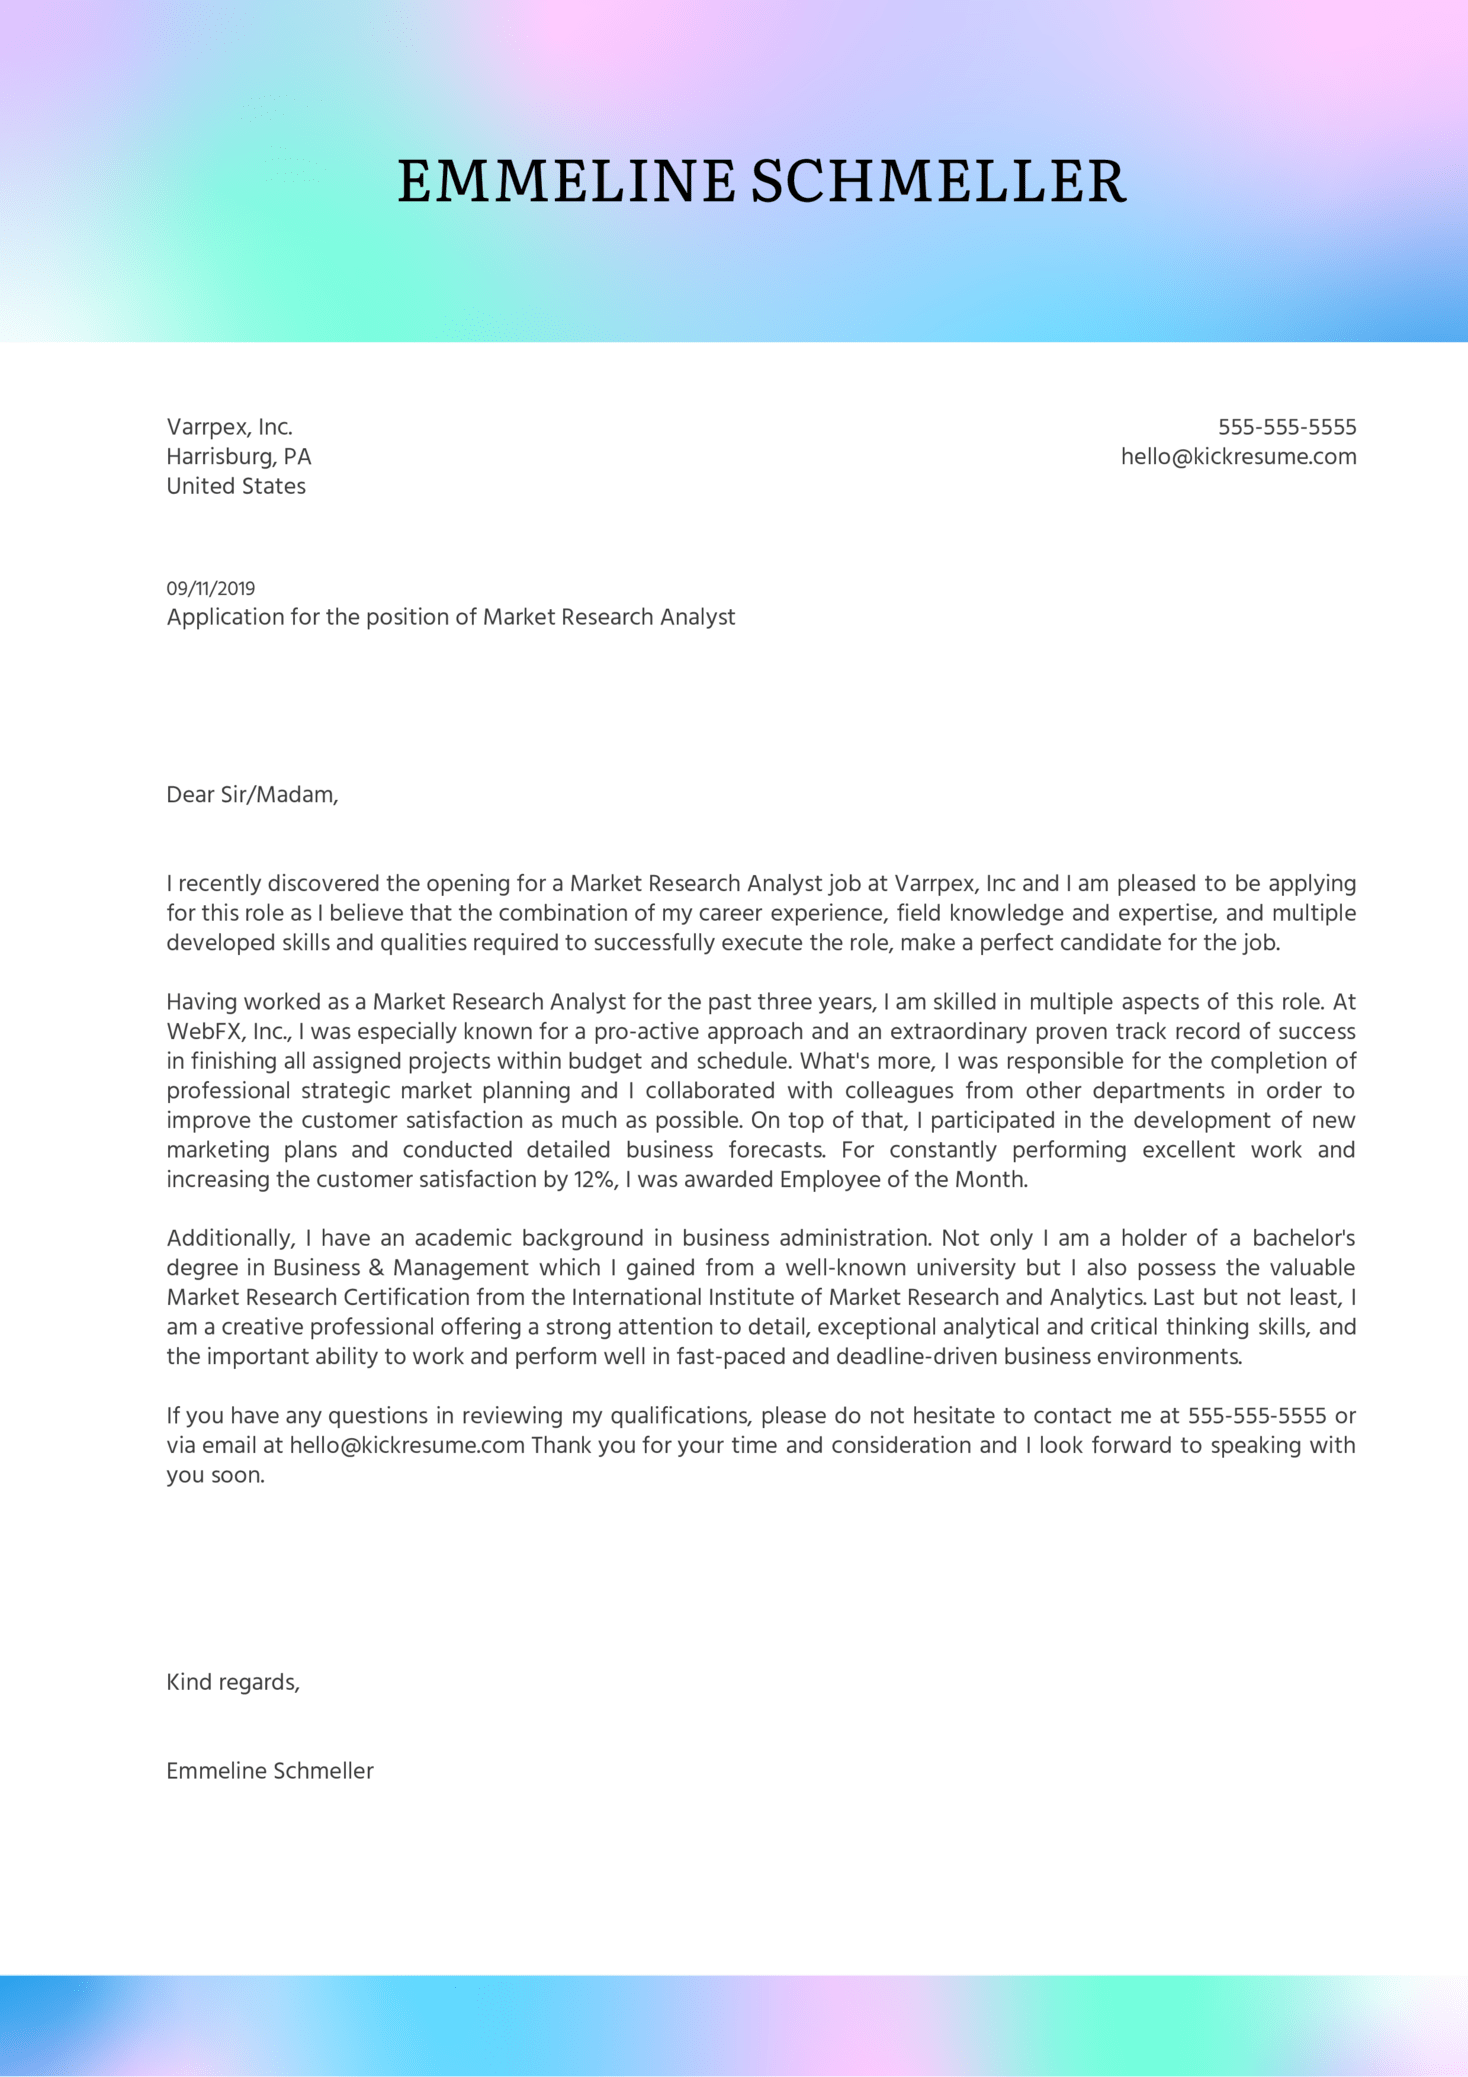 Market Research Analyst Cover Letter Example